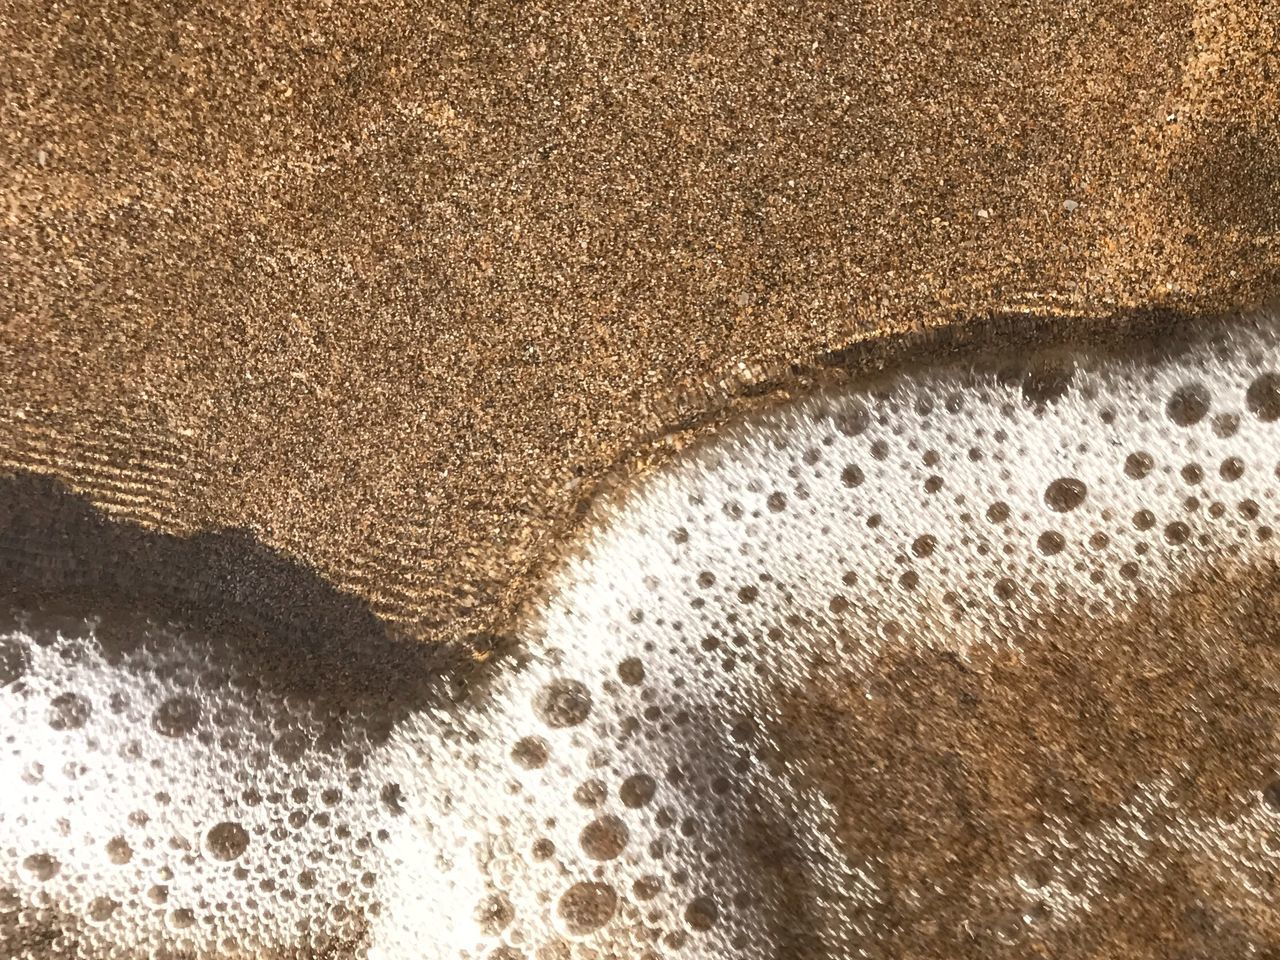 Close-up sand and waves. Sea foam. Backgrounds Beach Beauty In Nature Close-up Day High Angle View Maui Mauiphotography Nature No People Outdoors Sand Sand And Water Seafoam Sun And Sand Sun And Sea